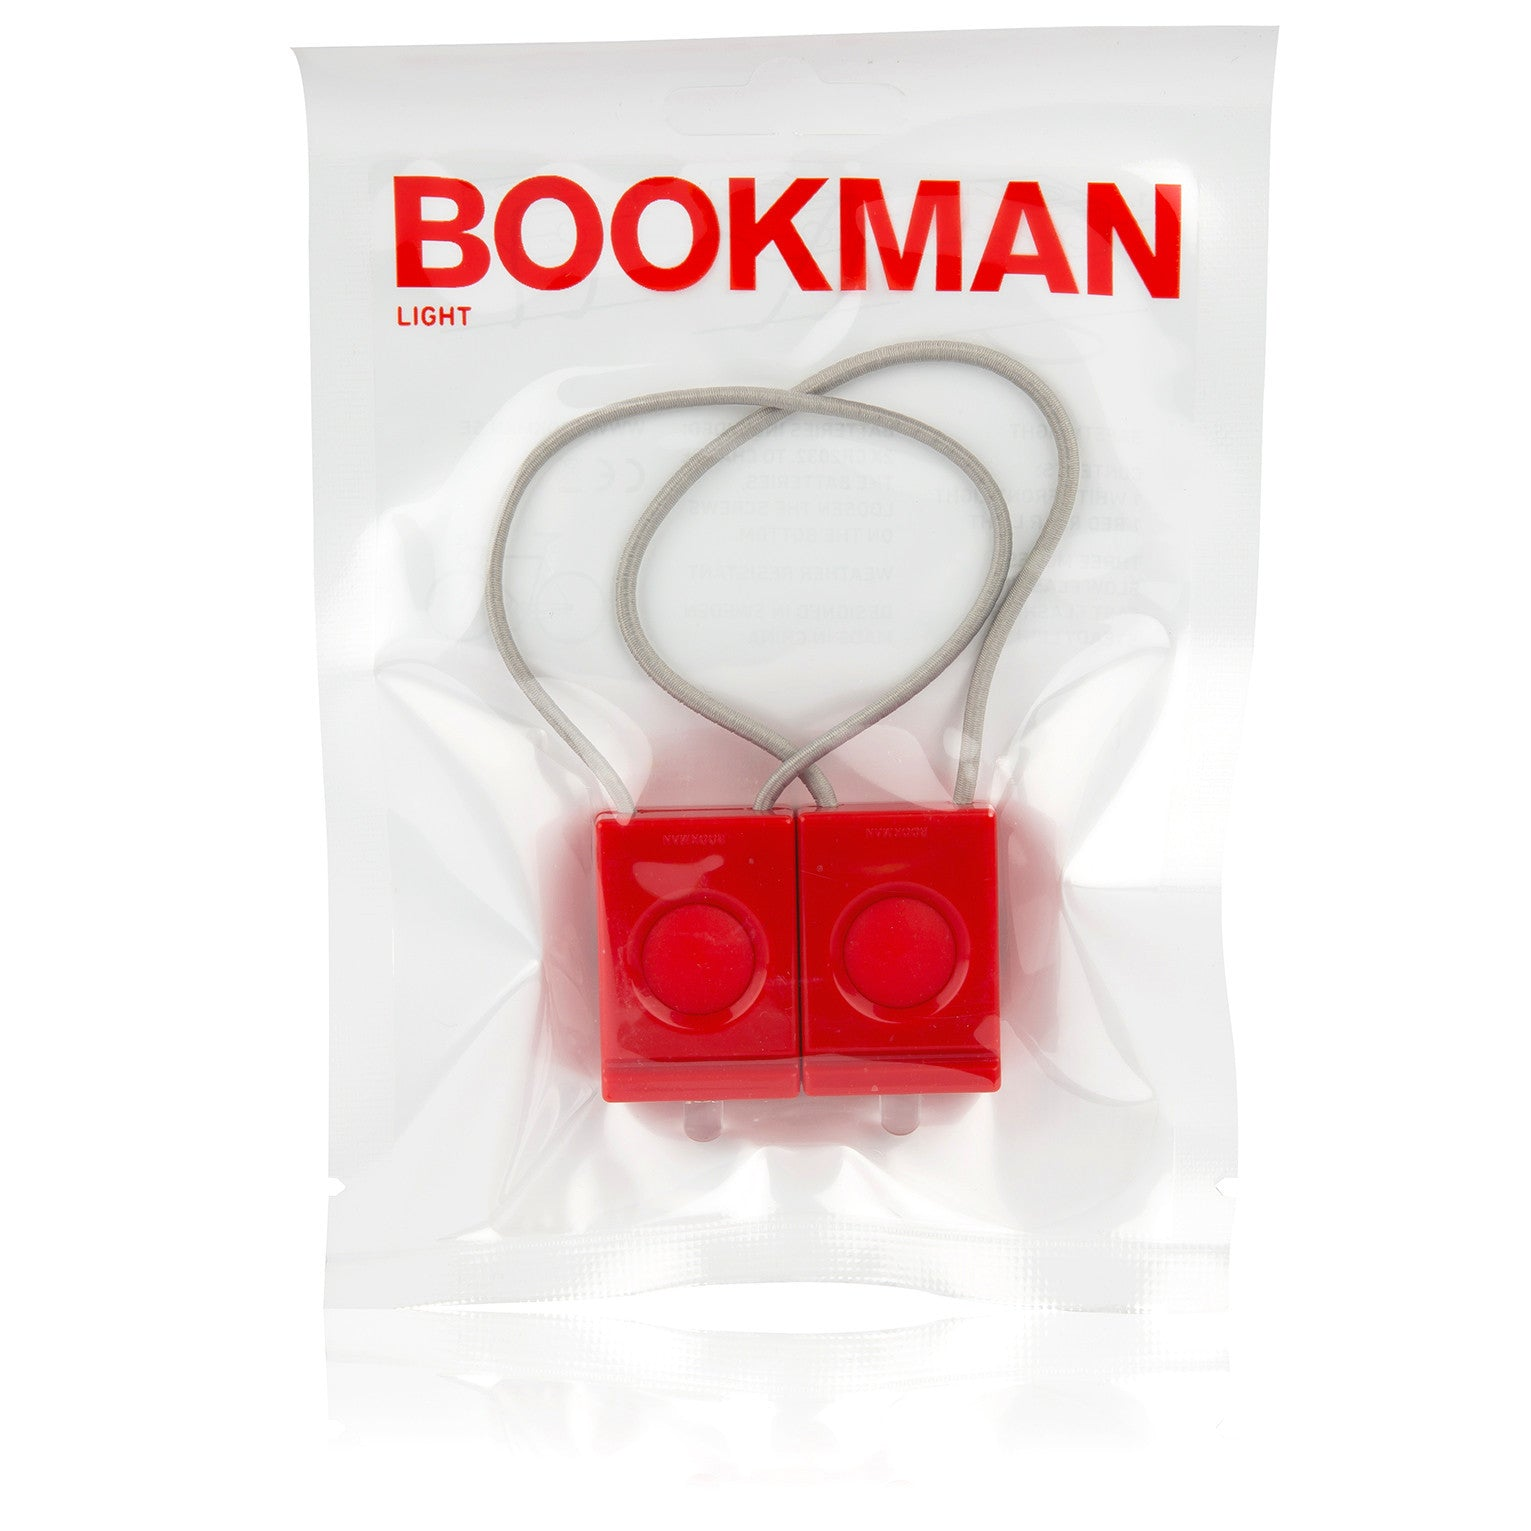 Bookman Light